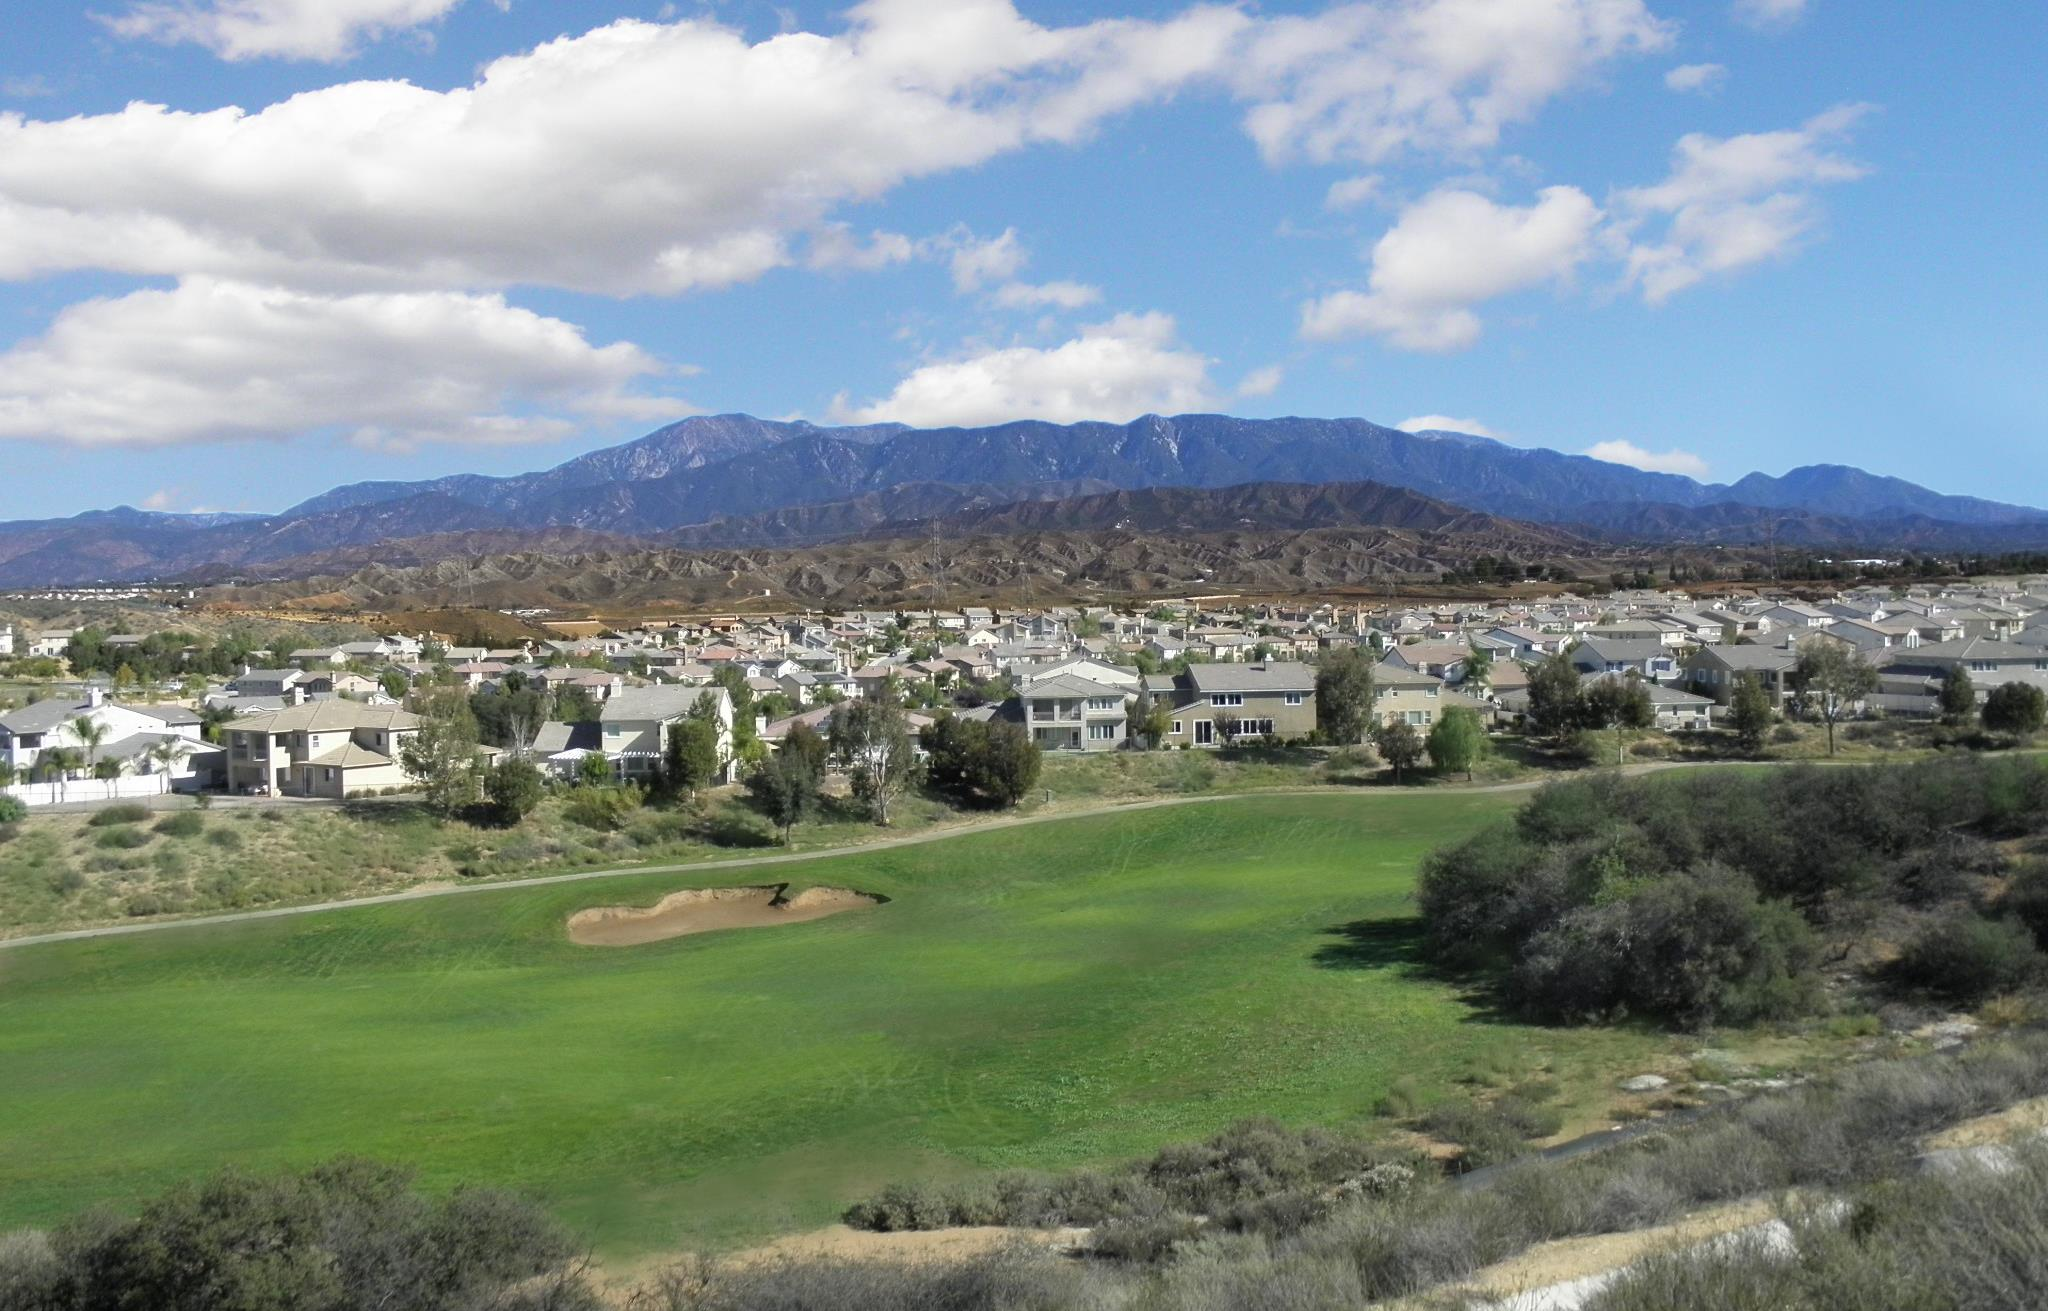 The Fairways in Fairway Canyon